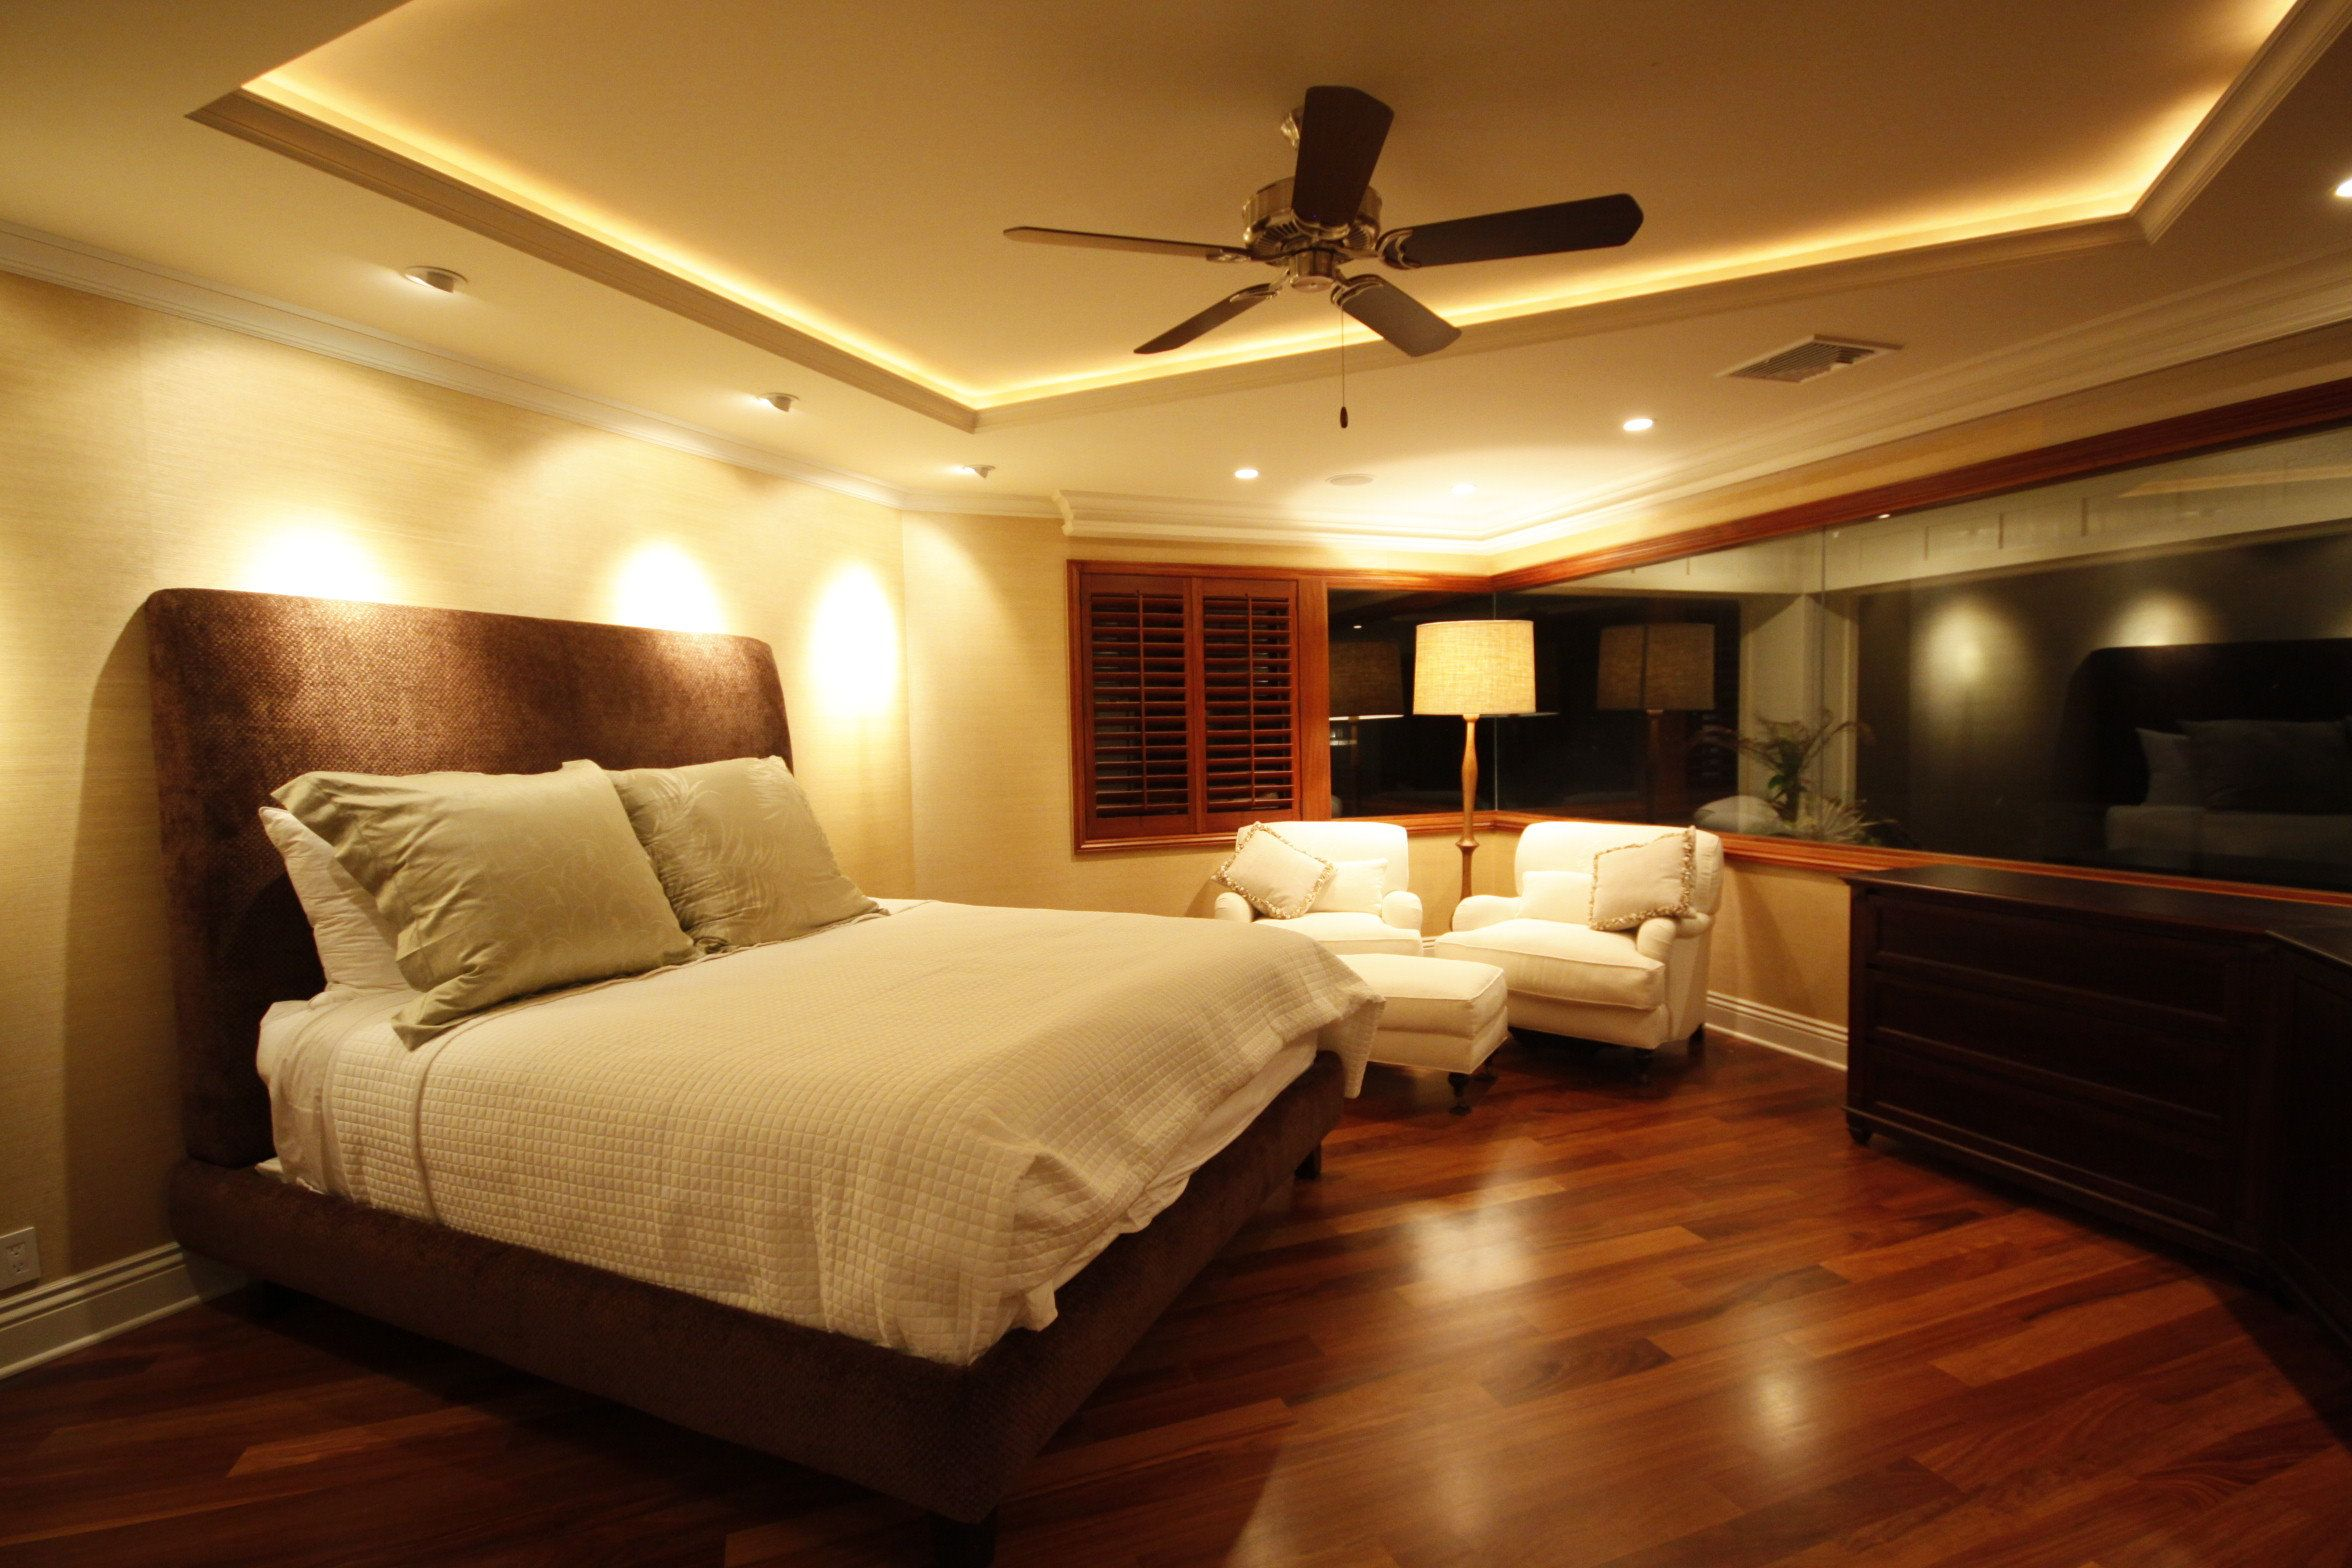 Appealing master bedroom modern decor with wooden floors for Beautiful bedroom design hd images